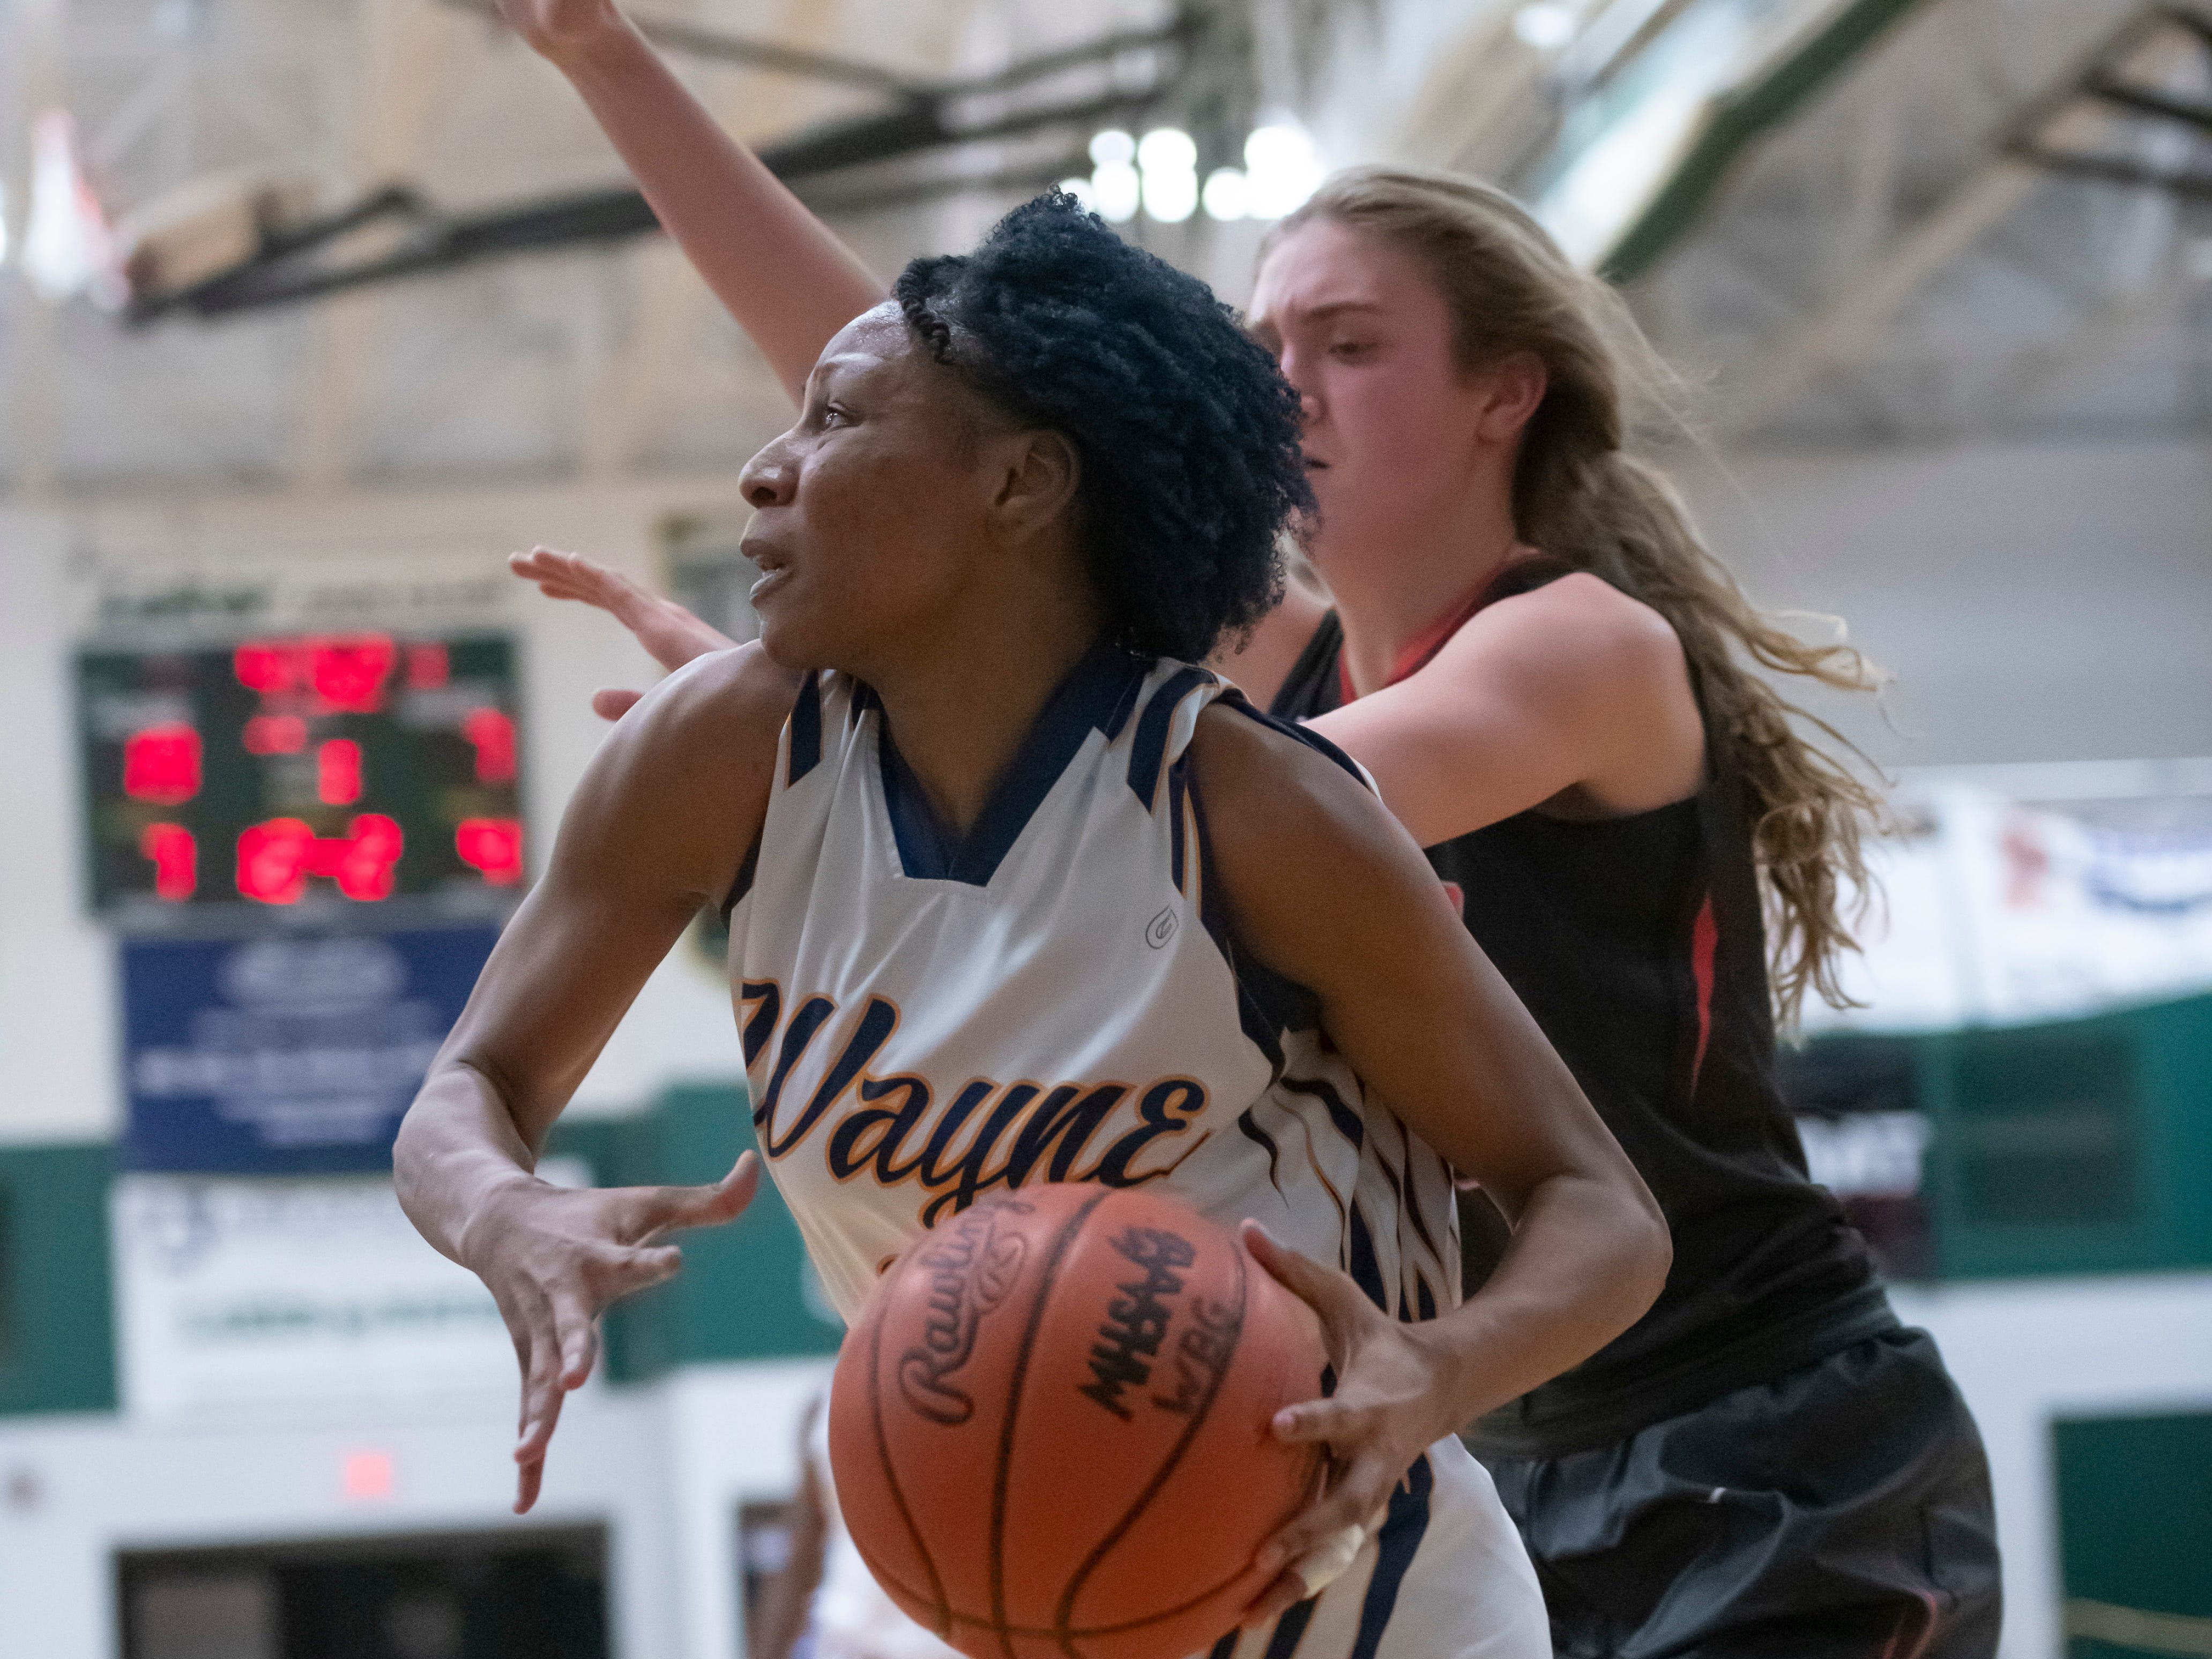 Wayne Memorial guard Sammiyah Hoskin drives the ball to the basket while under pressure from Bedford's Sophia Gray in the first half.